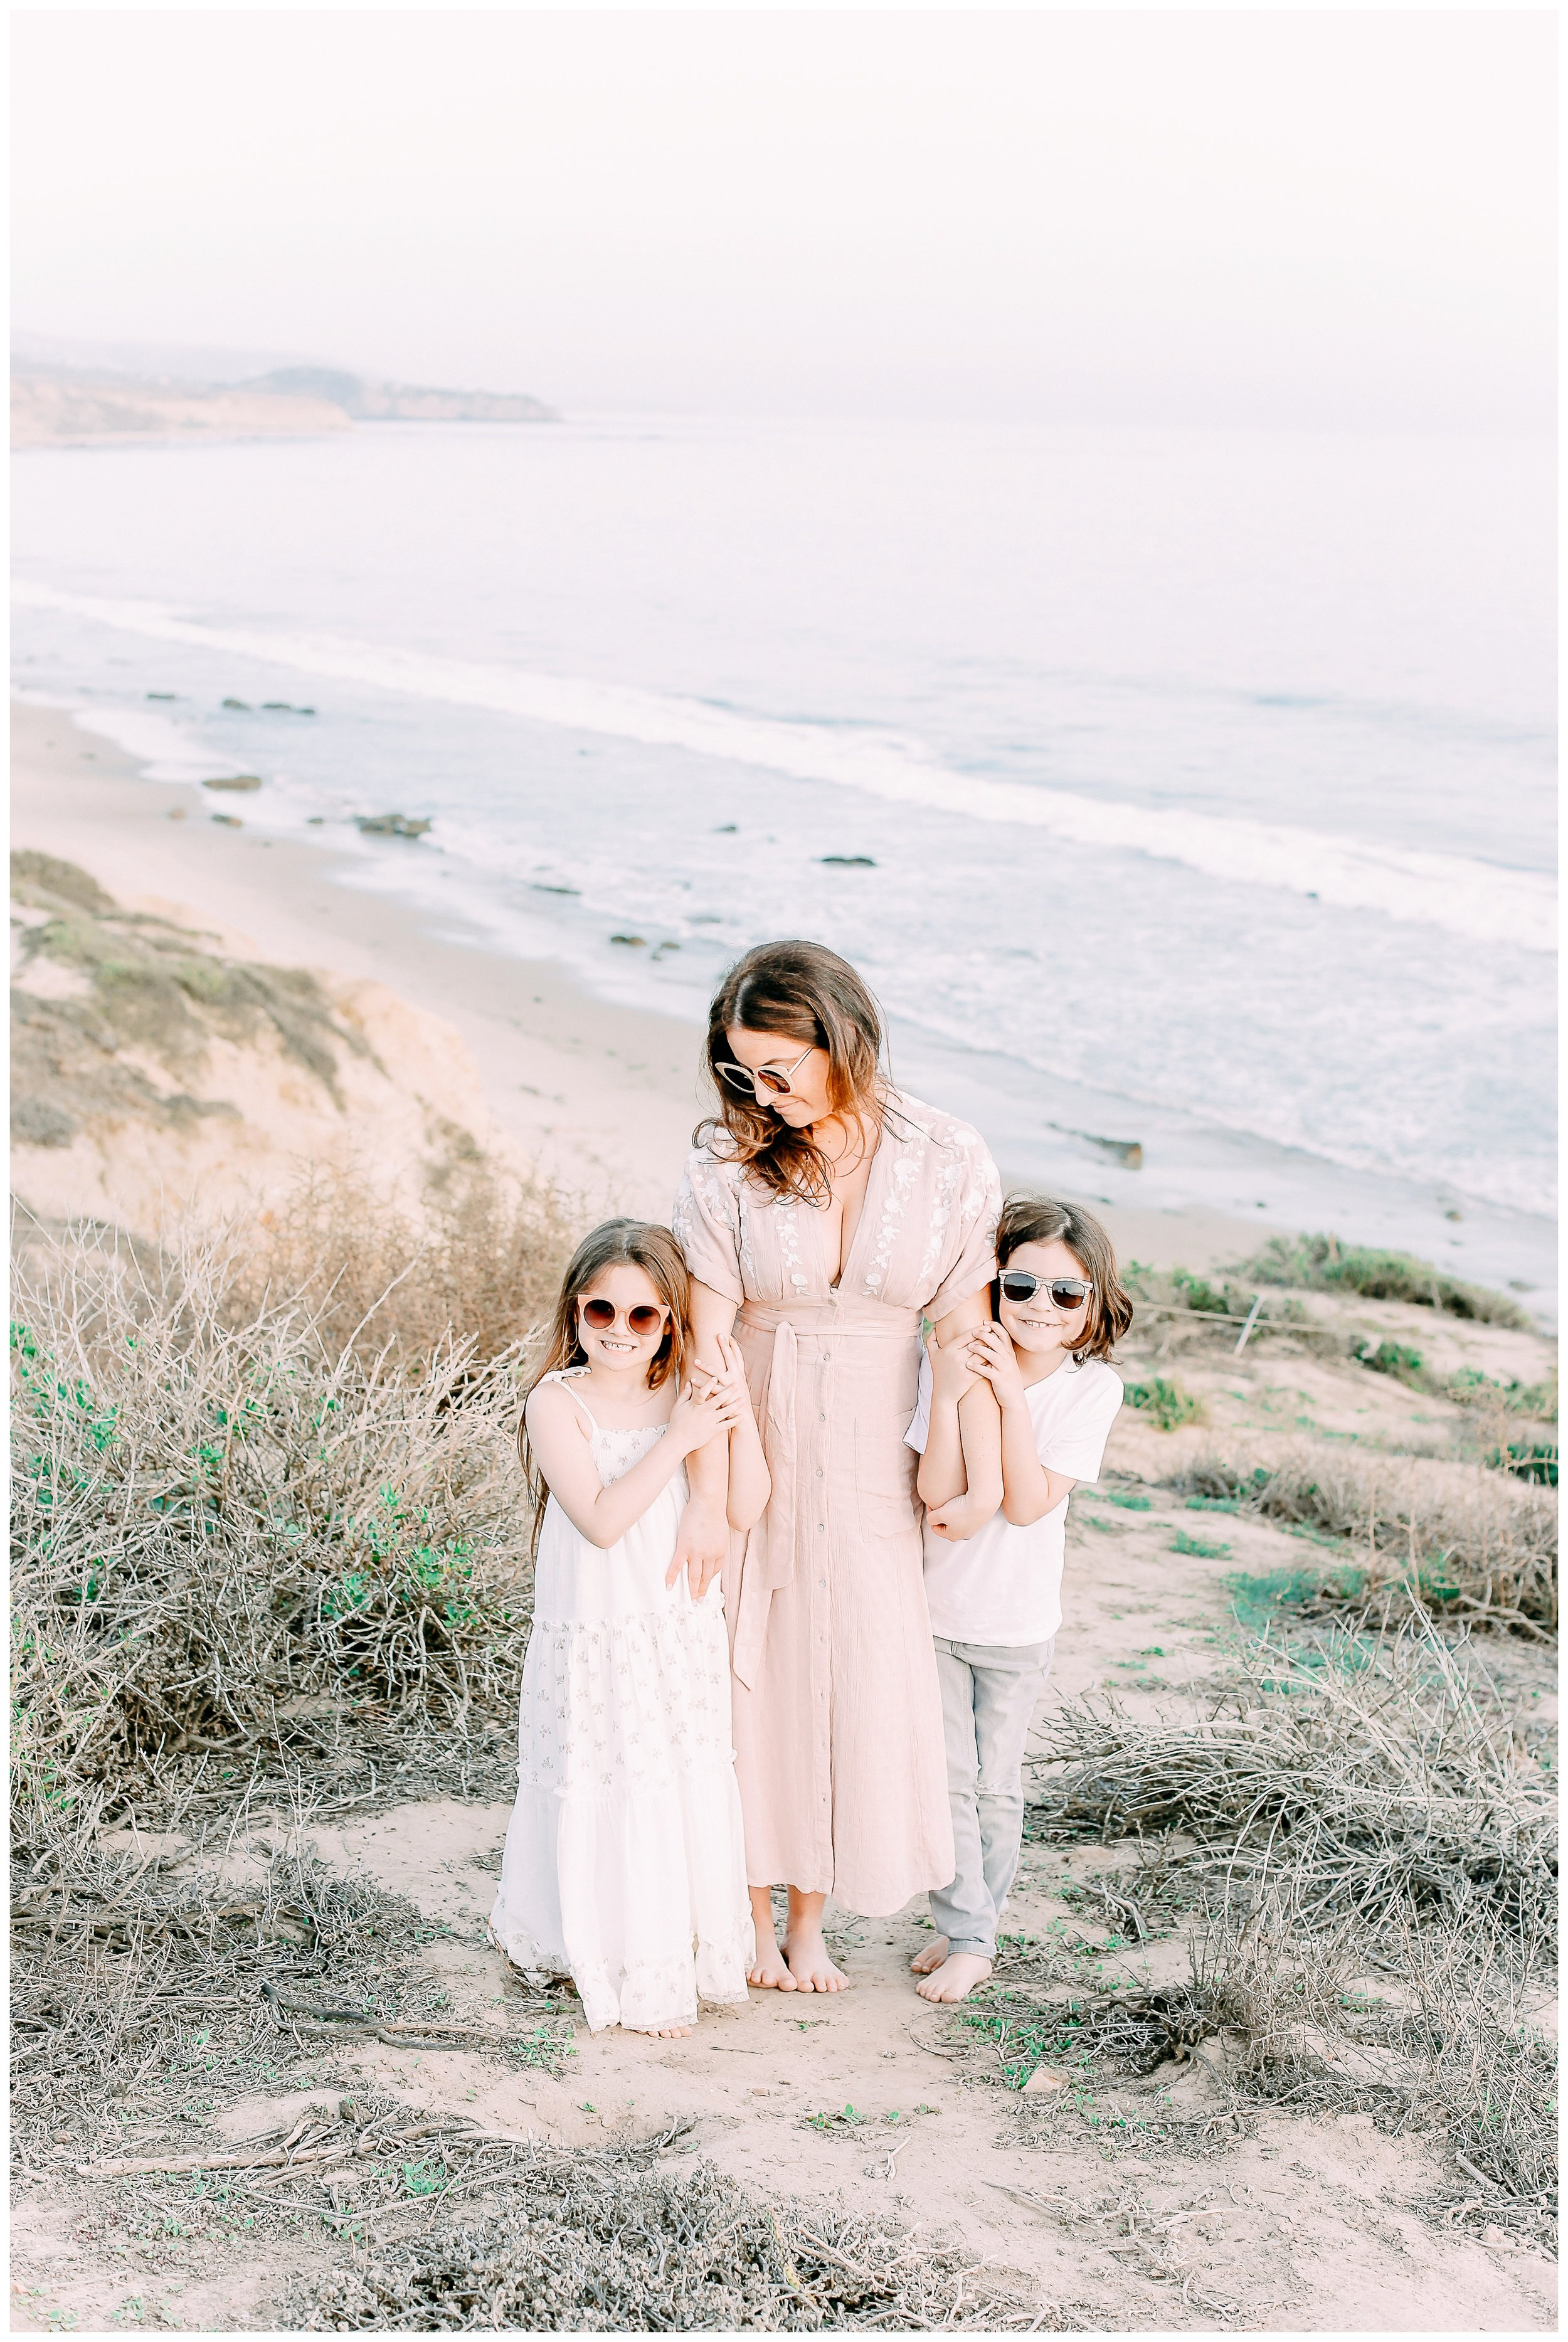 Crystal-Cove-State-Beach-Motherhood- Session-Crystal-Cove-Newport-Beach-Family-Photographer-Crystal-Cove-Minnow-Swim-Cori-Kleckner-Photography-Orange-County-Vacation-Family-Photos-Session-_0861.jpg